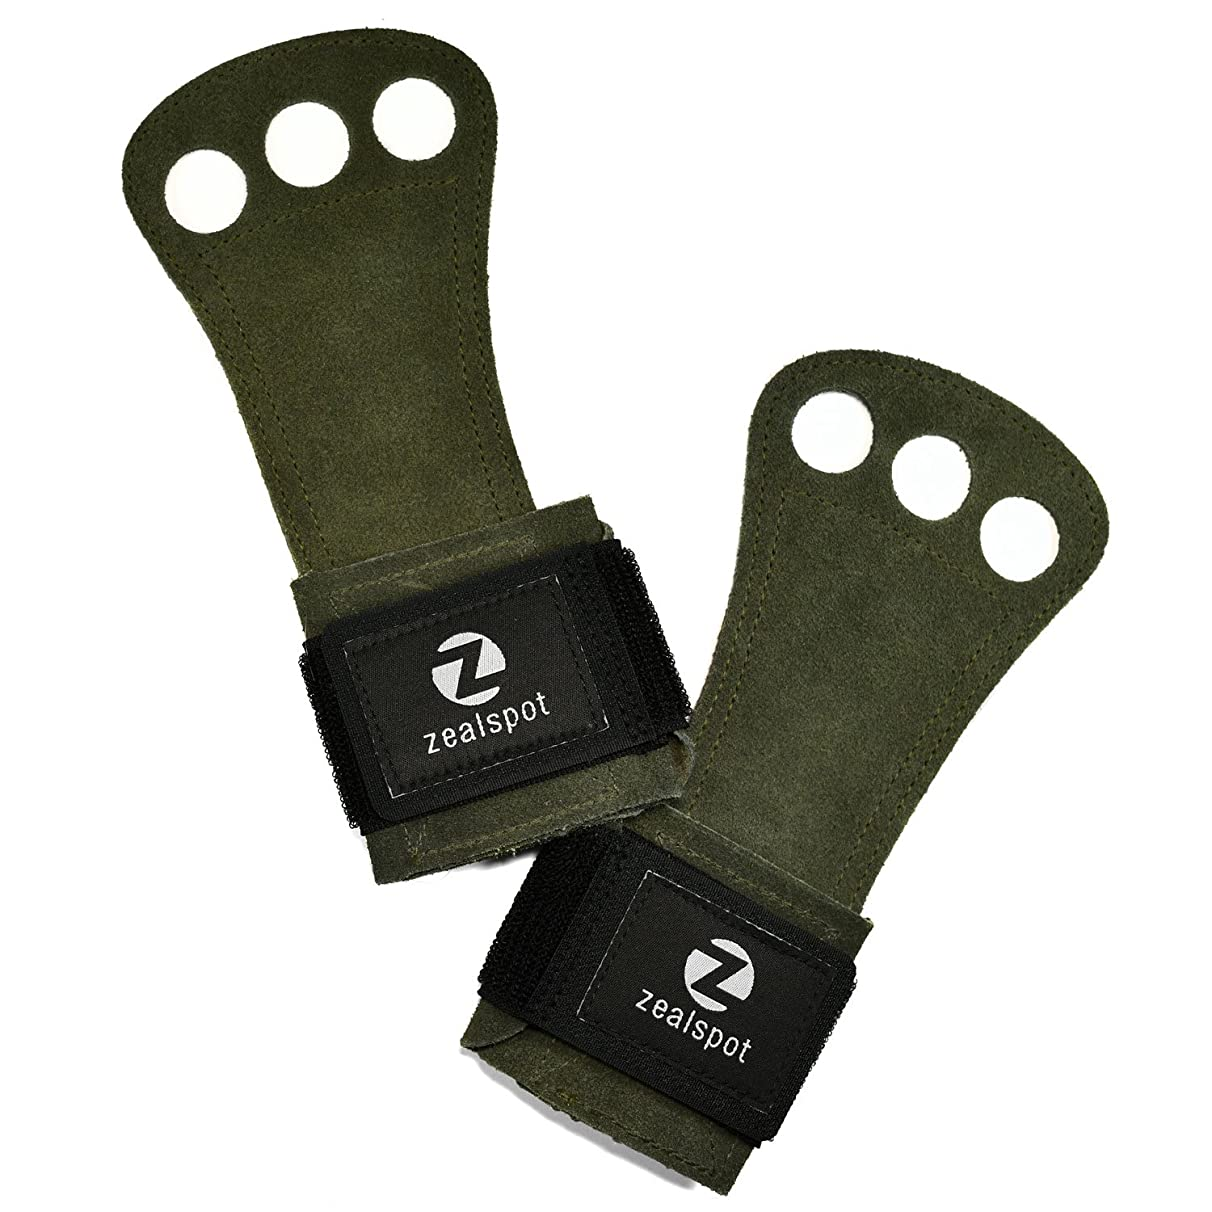 Z ZEALSPOT 3 Holes Leather Gymnastics Hand Grips for pullups, Weight Lifting, Powerlifting,Chin ups, Exercise, Kettlebell and Barbells